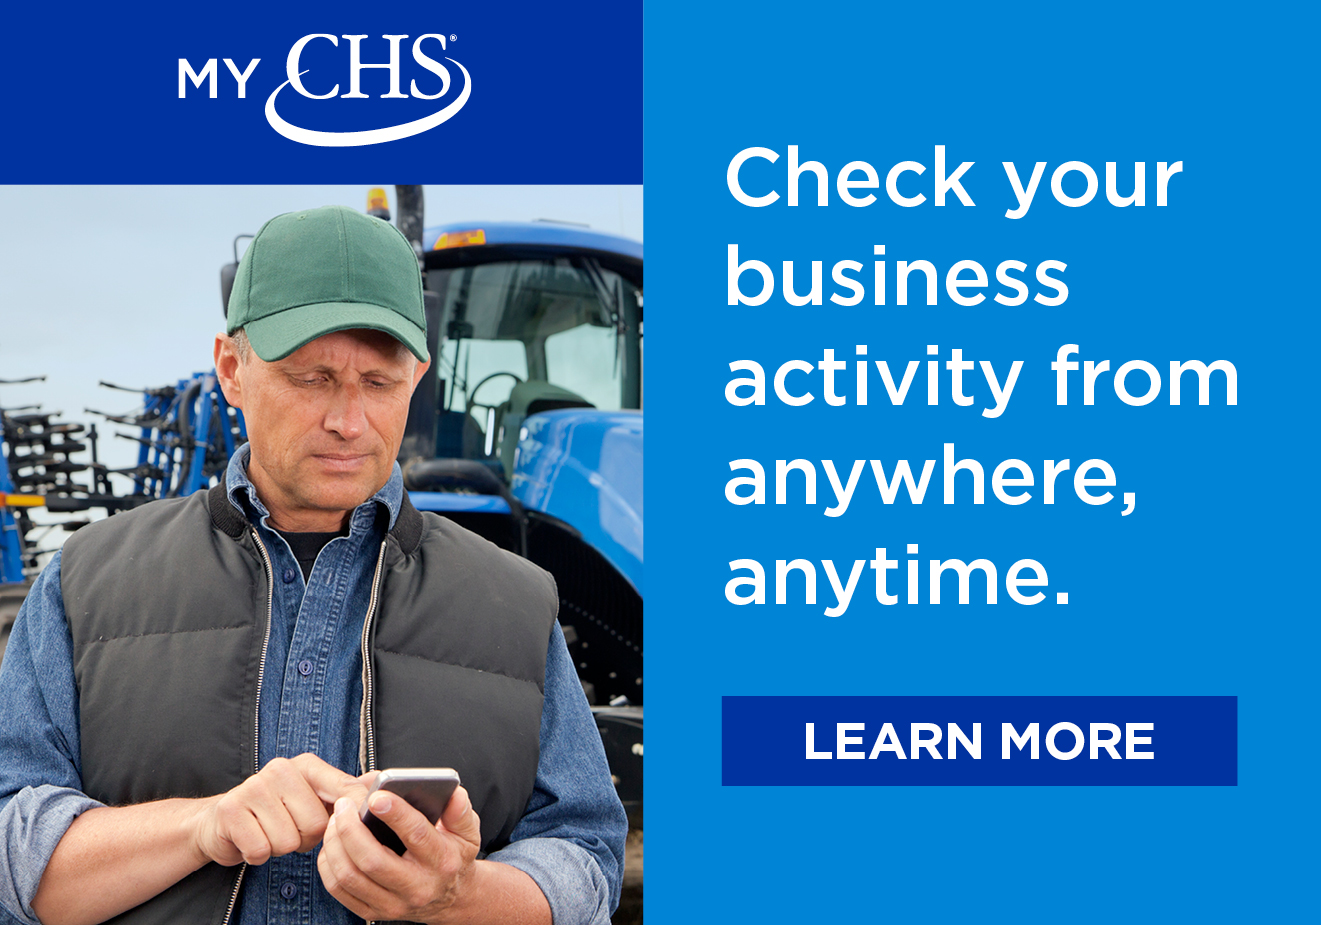 Check your business activity from anywhere, anytime with the MyCHS Customer App